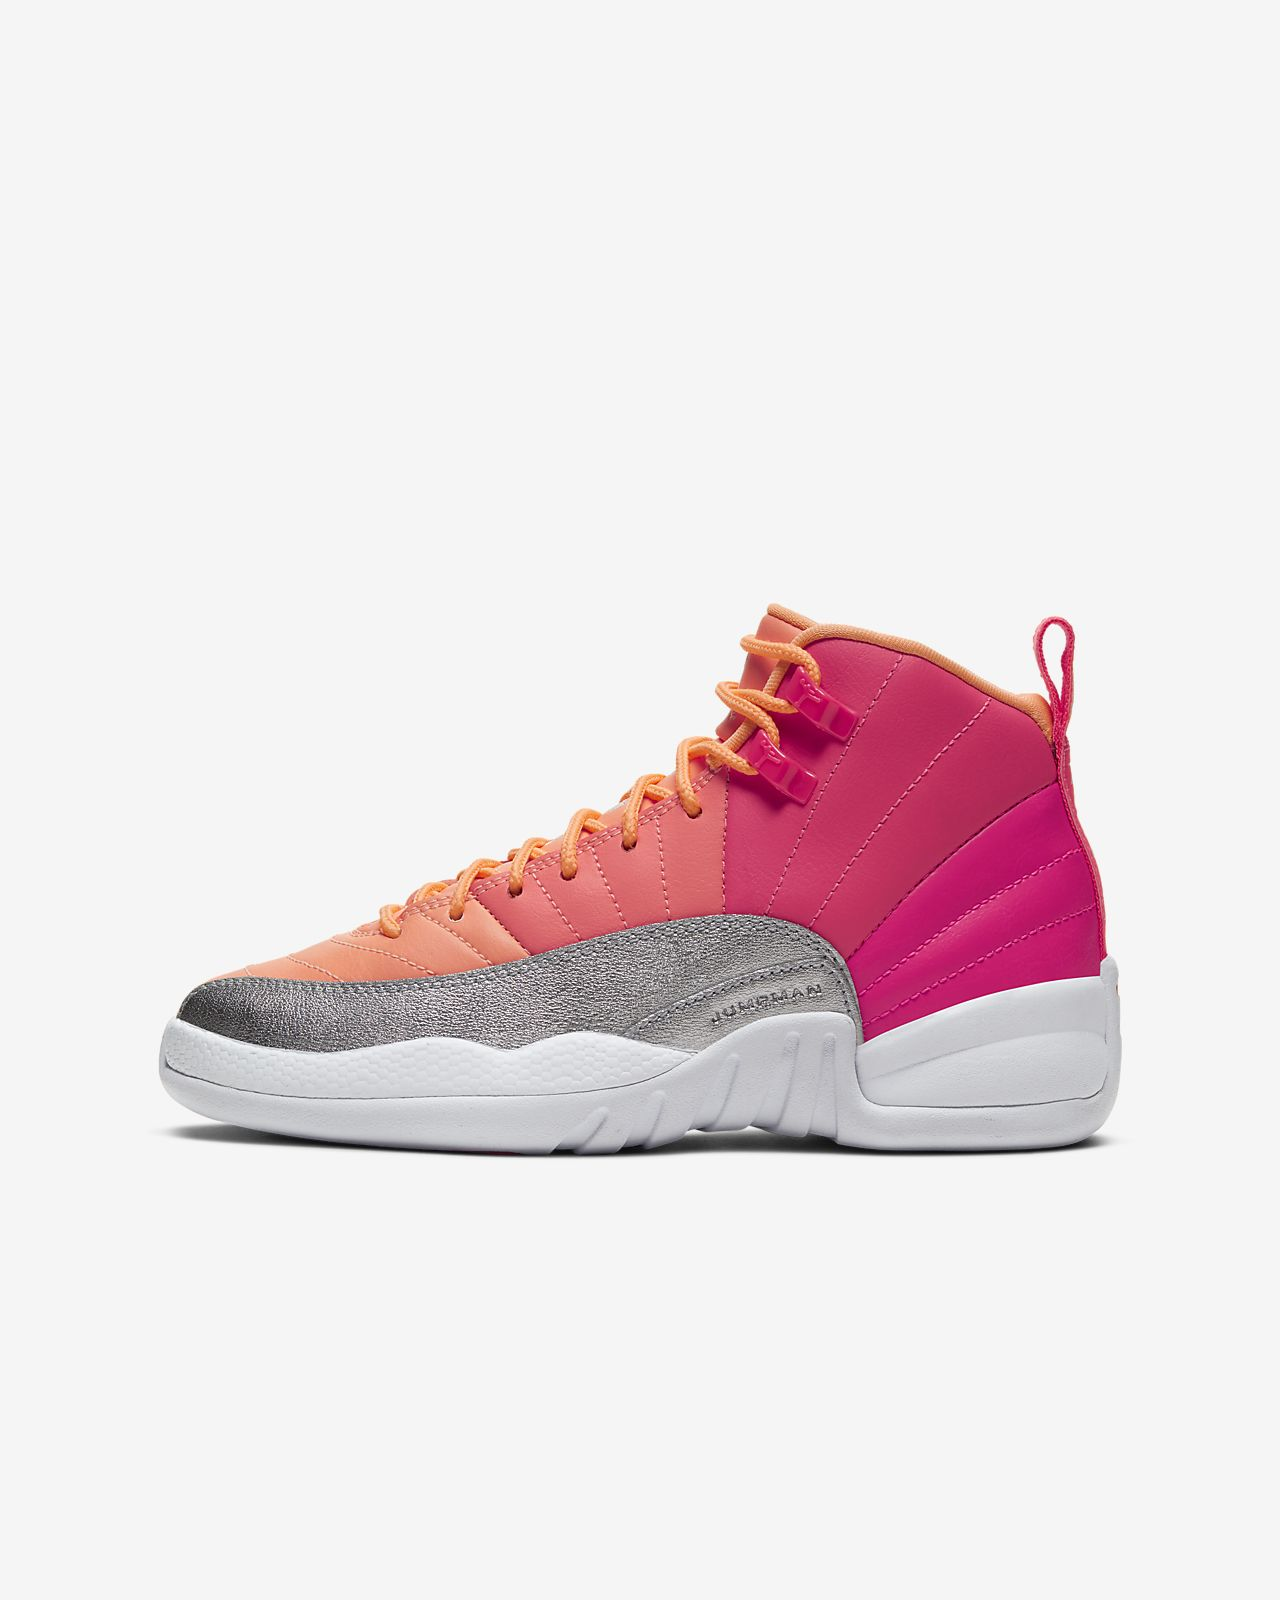 Air Jordan 12 Retro Older Kids' Shoe